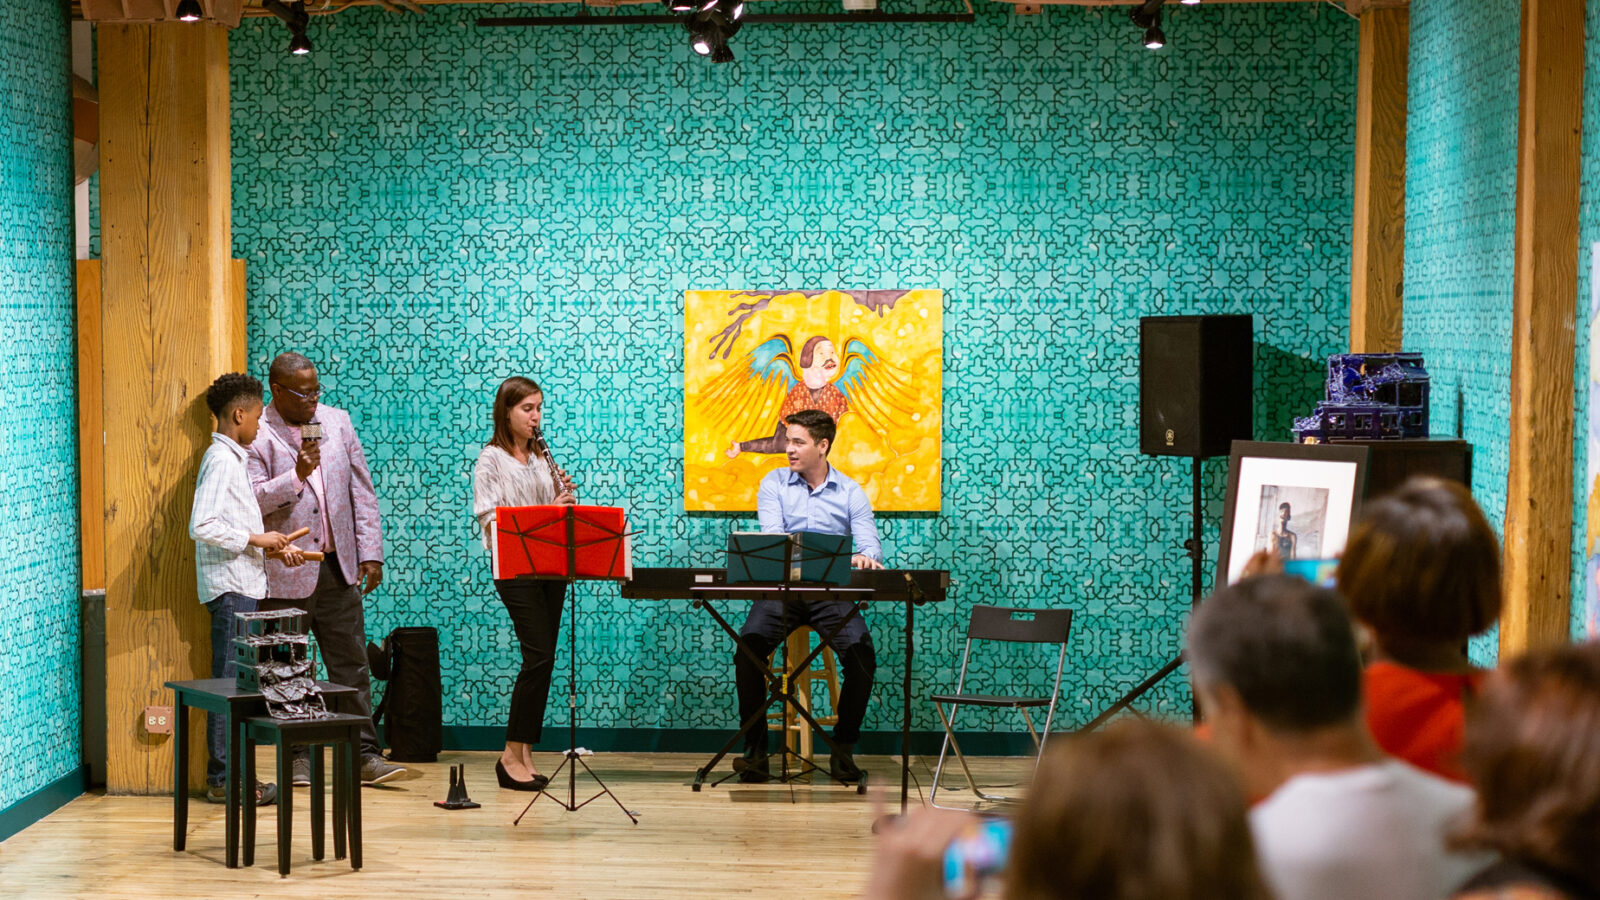 CAYO musicians perform at Weinberg/Newton Gallery in River North (Photo: Pixelcharge Photos)